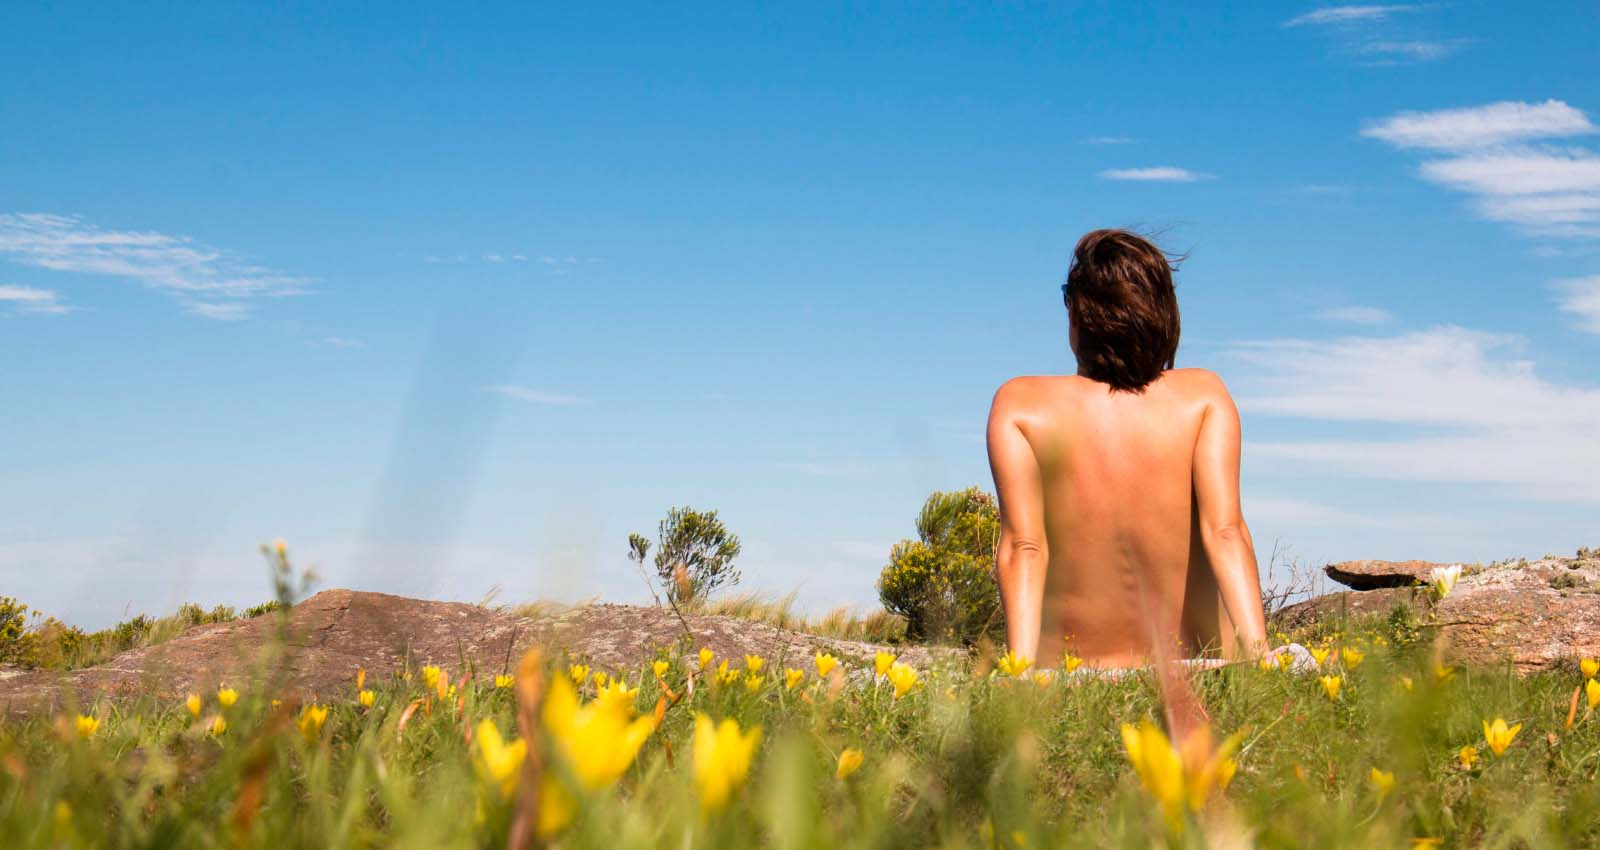 nudism and naturism in Argentina